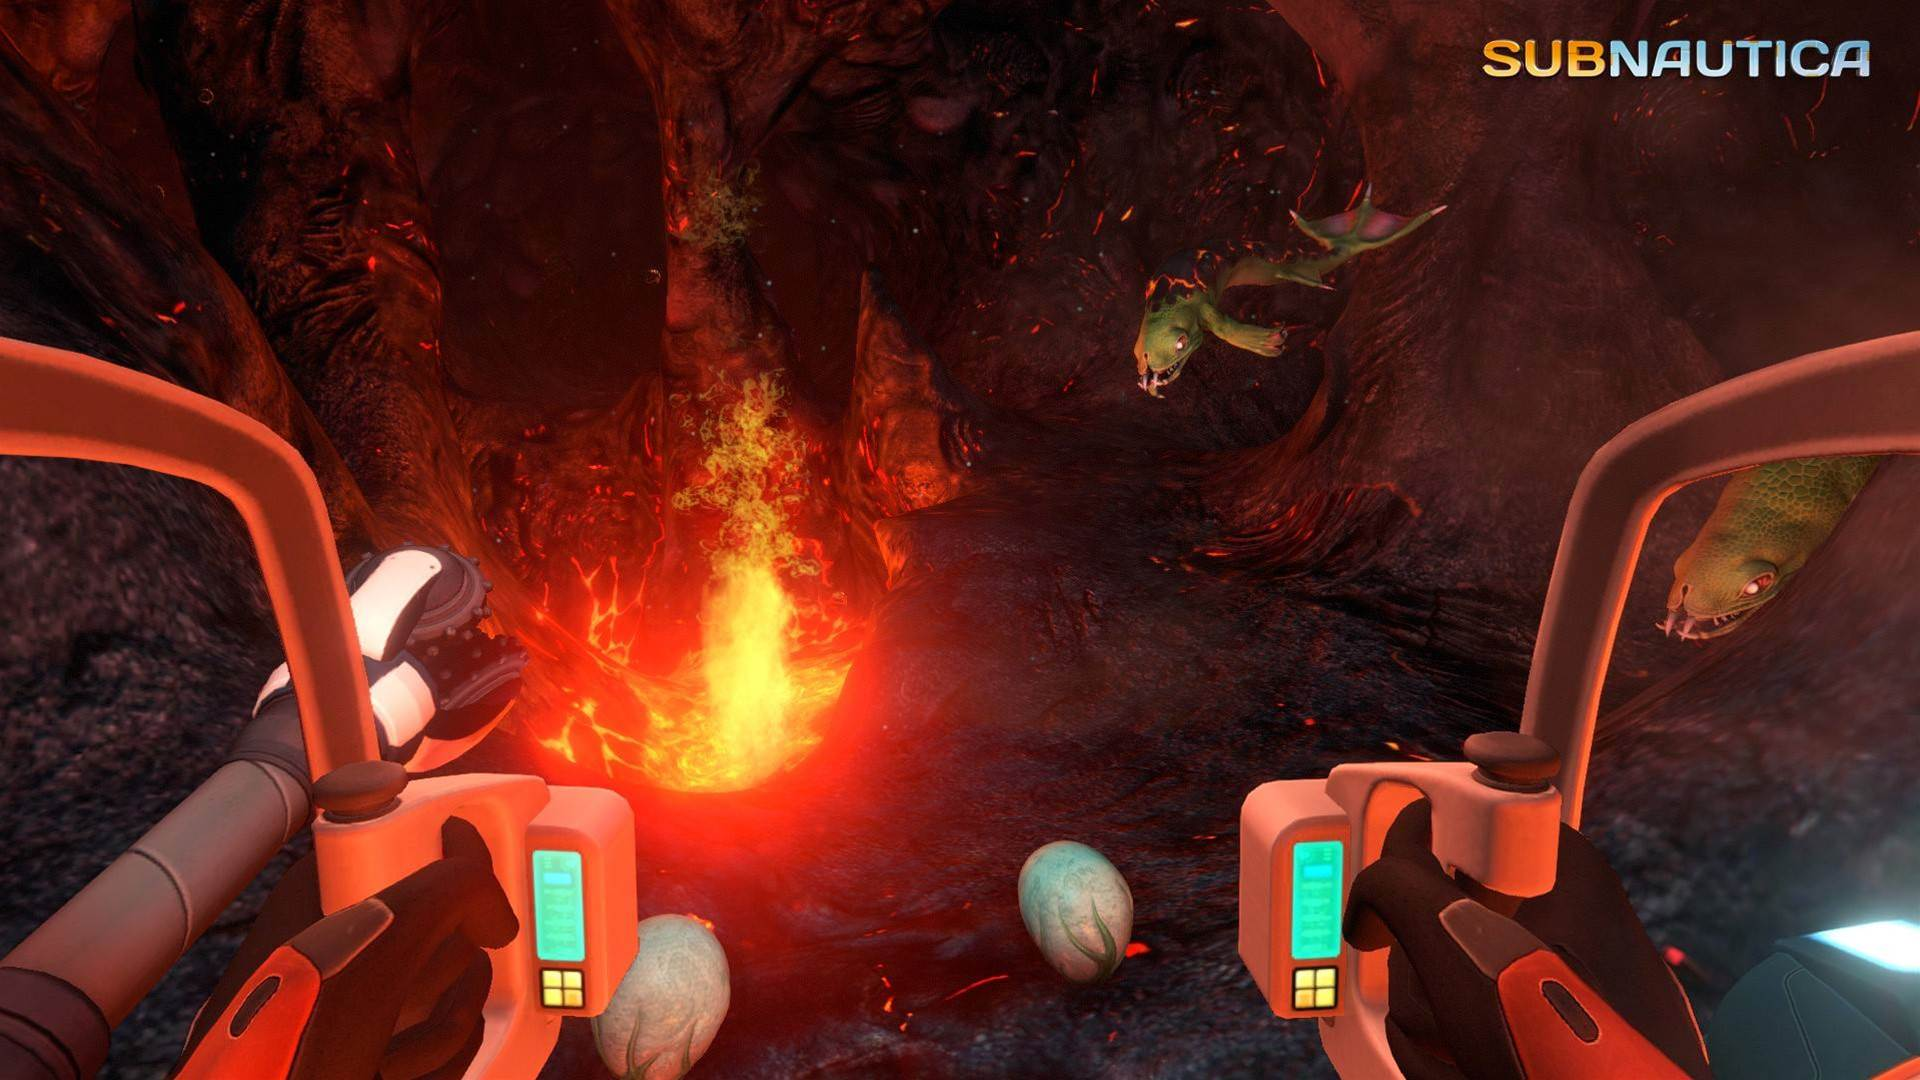 Sink your teeth into these sweet submerged Subnautica screens